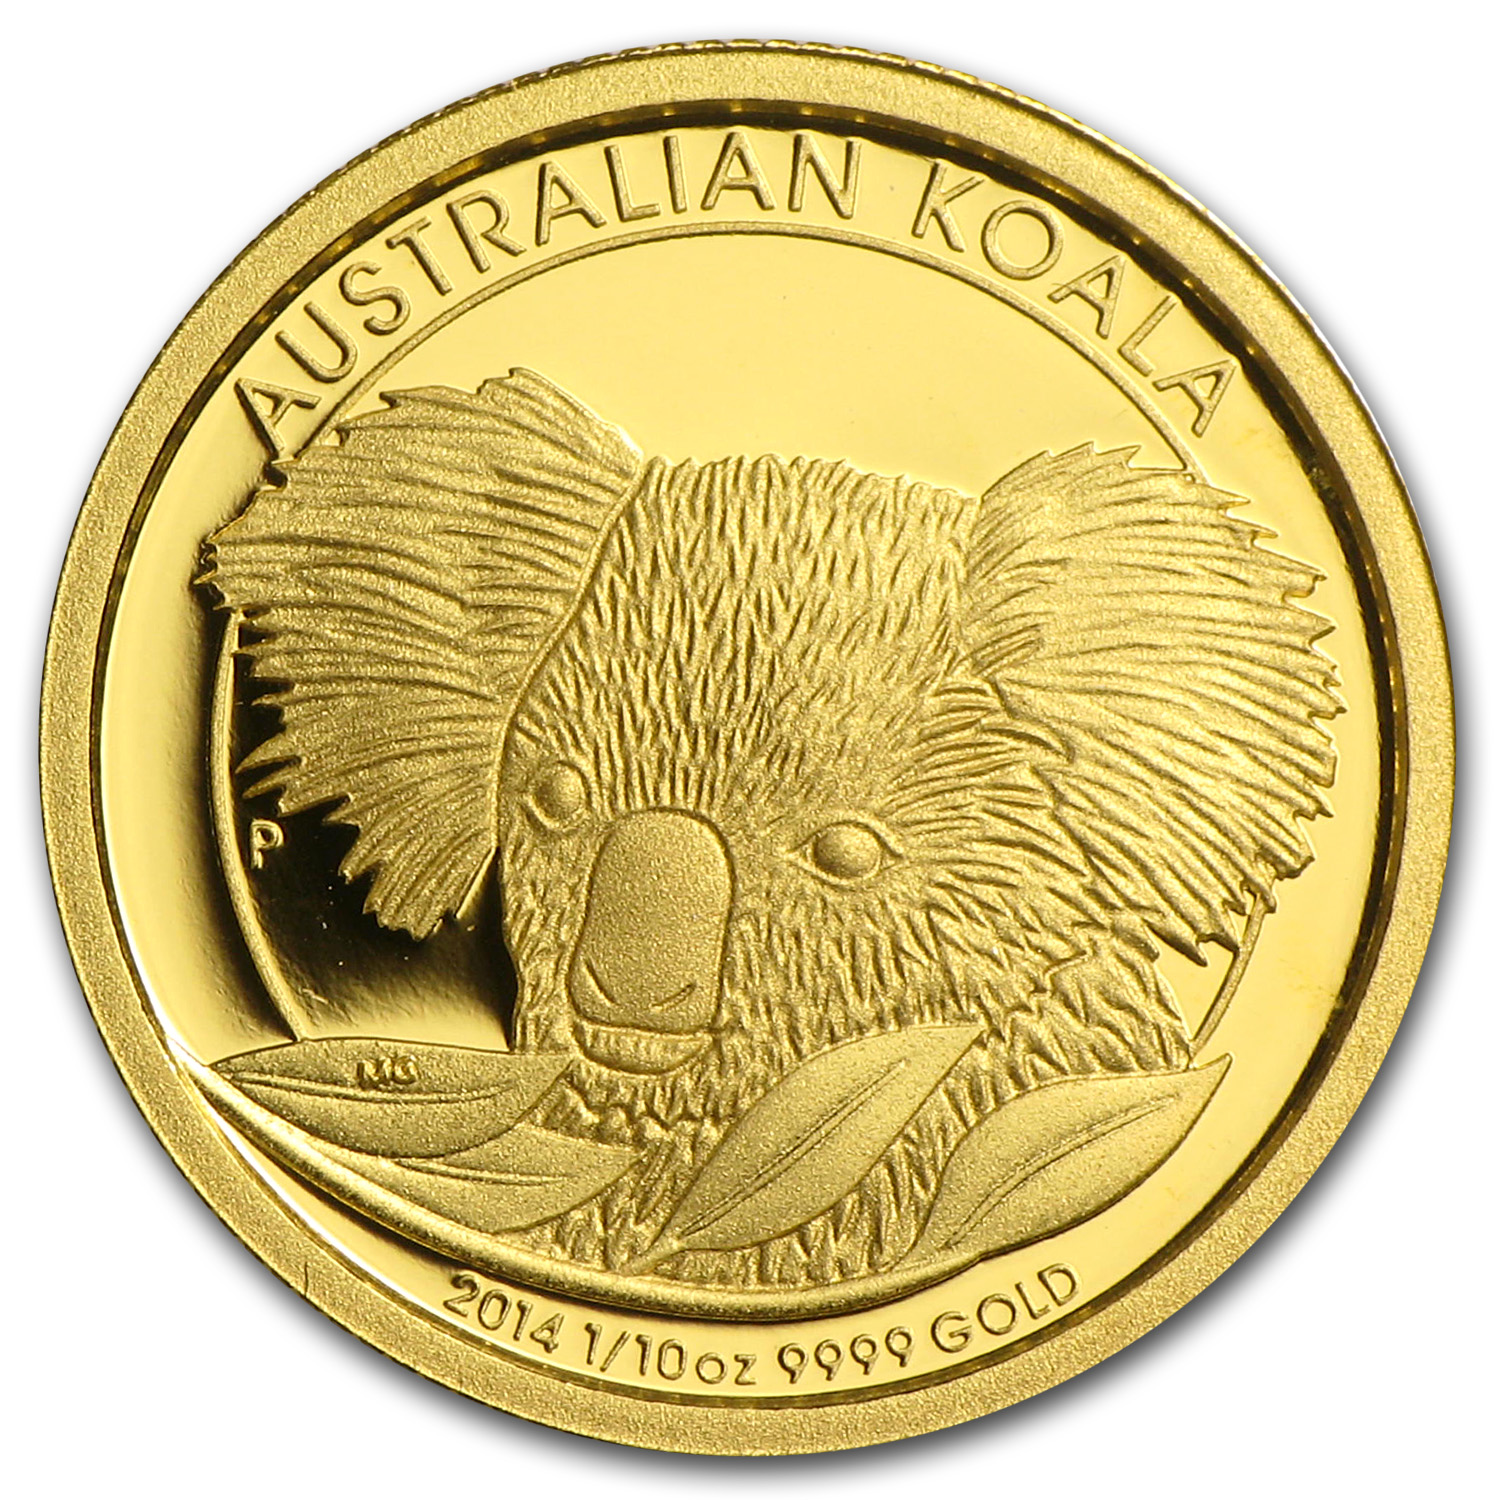 2014 Australia 1/10 oz Gold Koala Proof